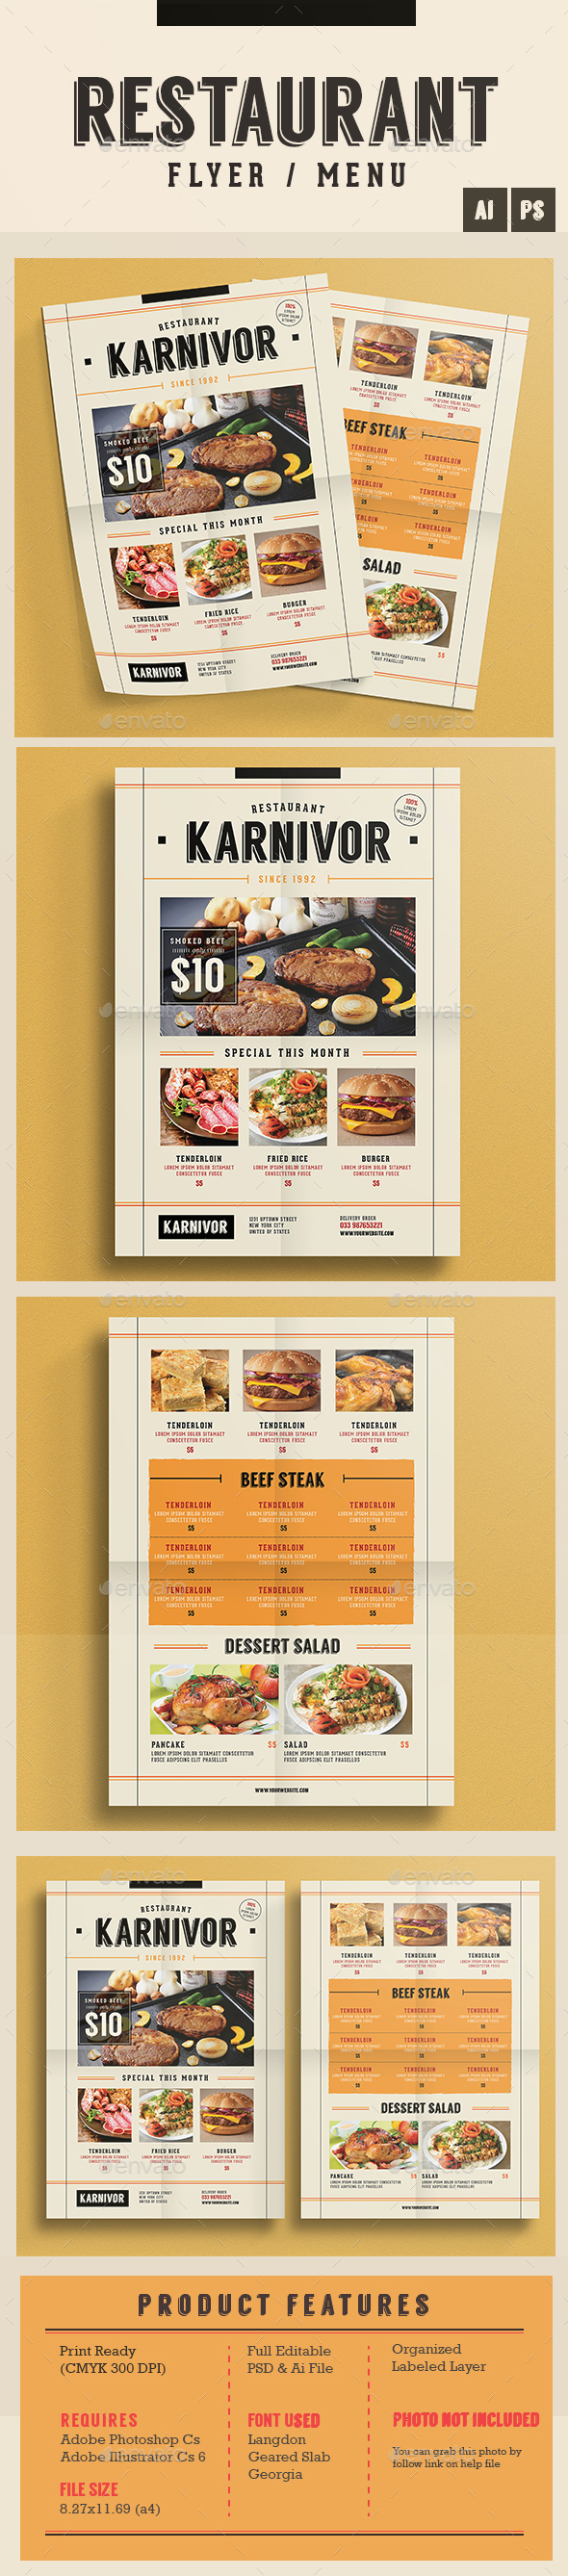 Restaurant Flyer Menu - Food Menus Print Templates